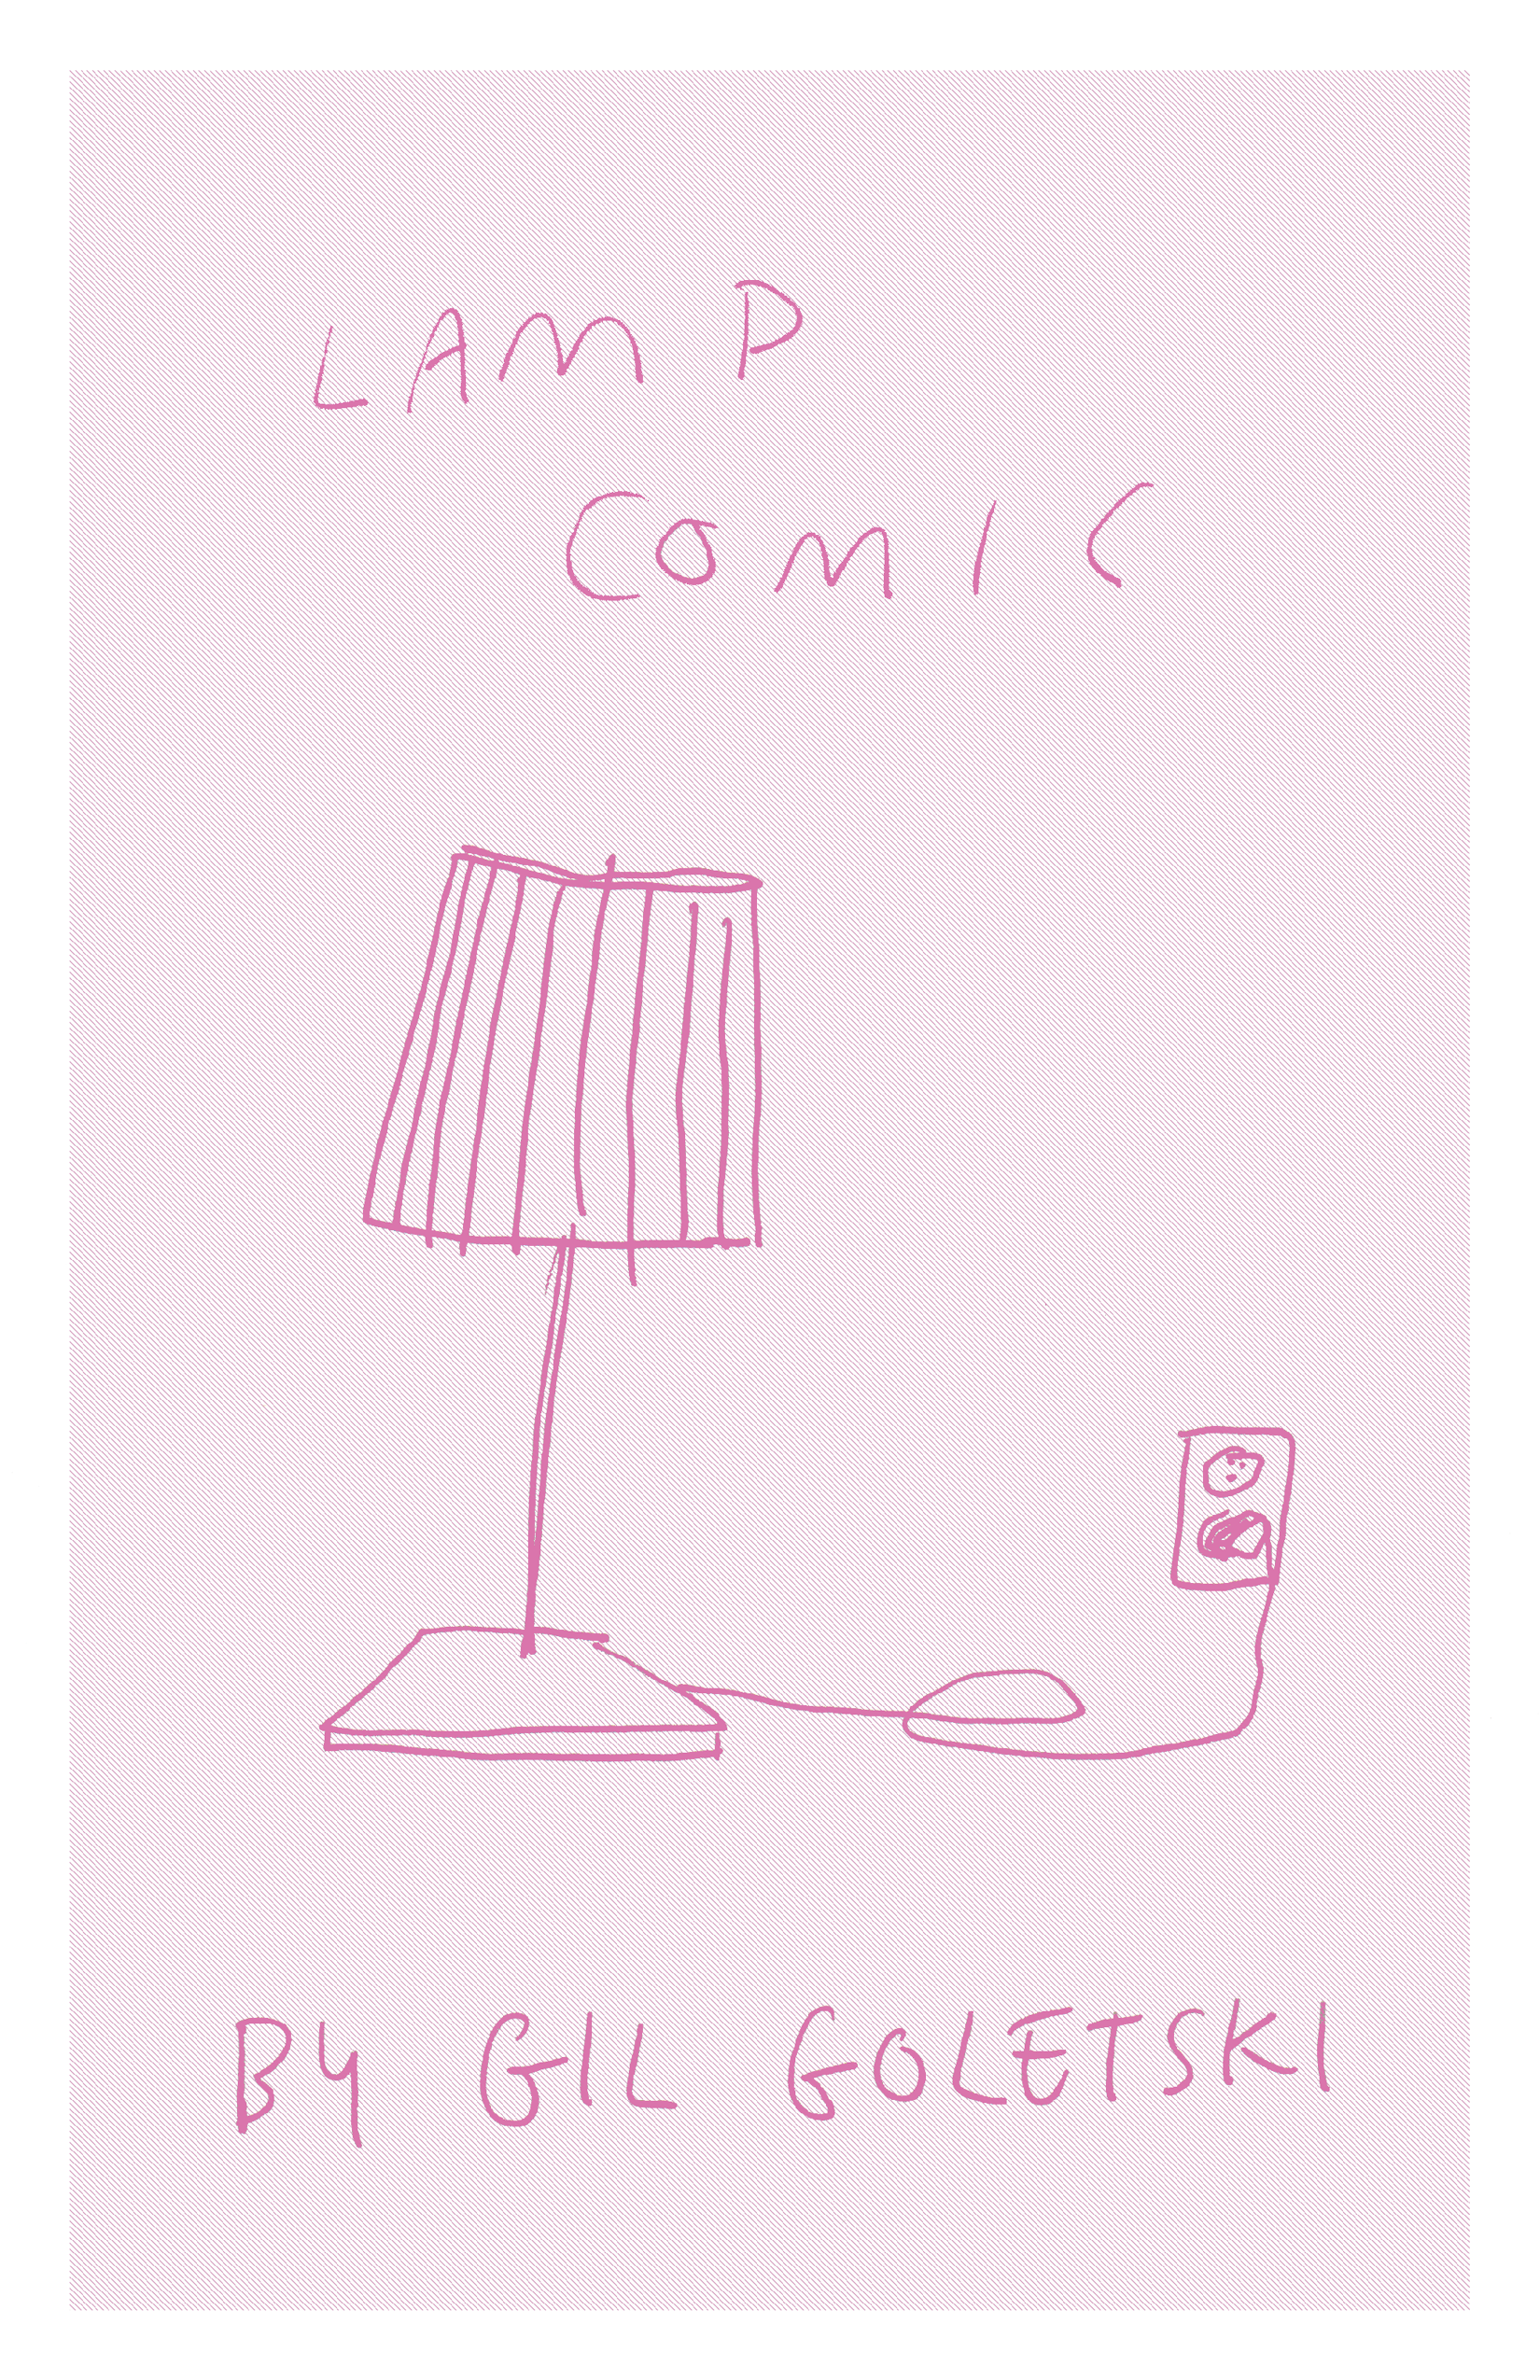 zine i self published in 2019 about lamps